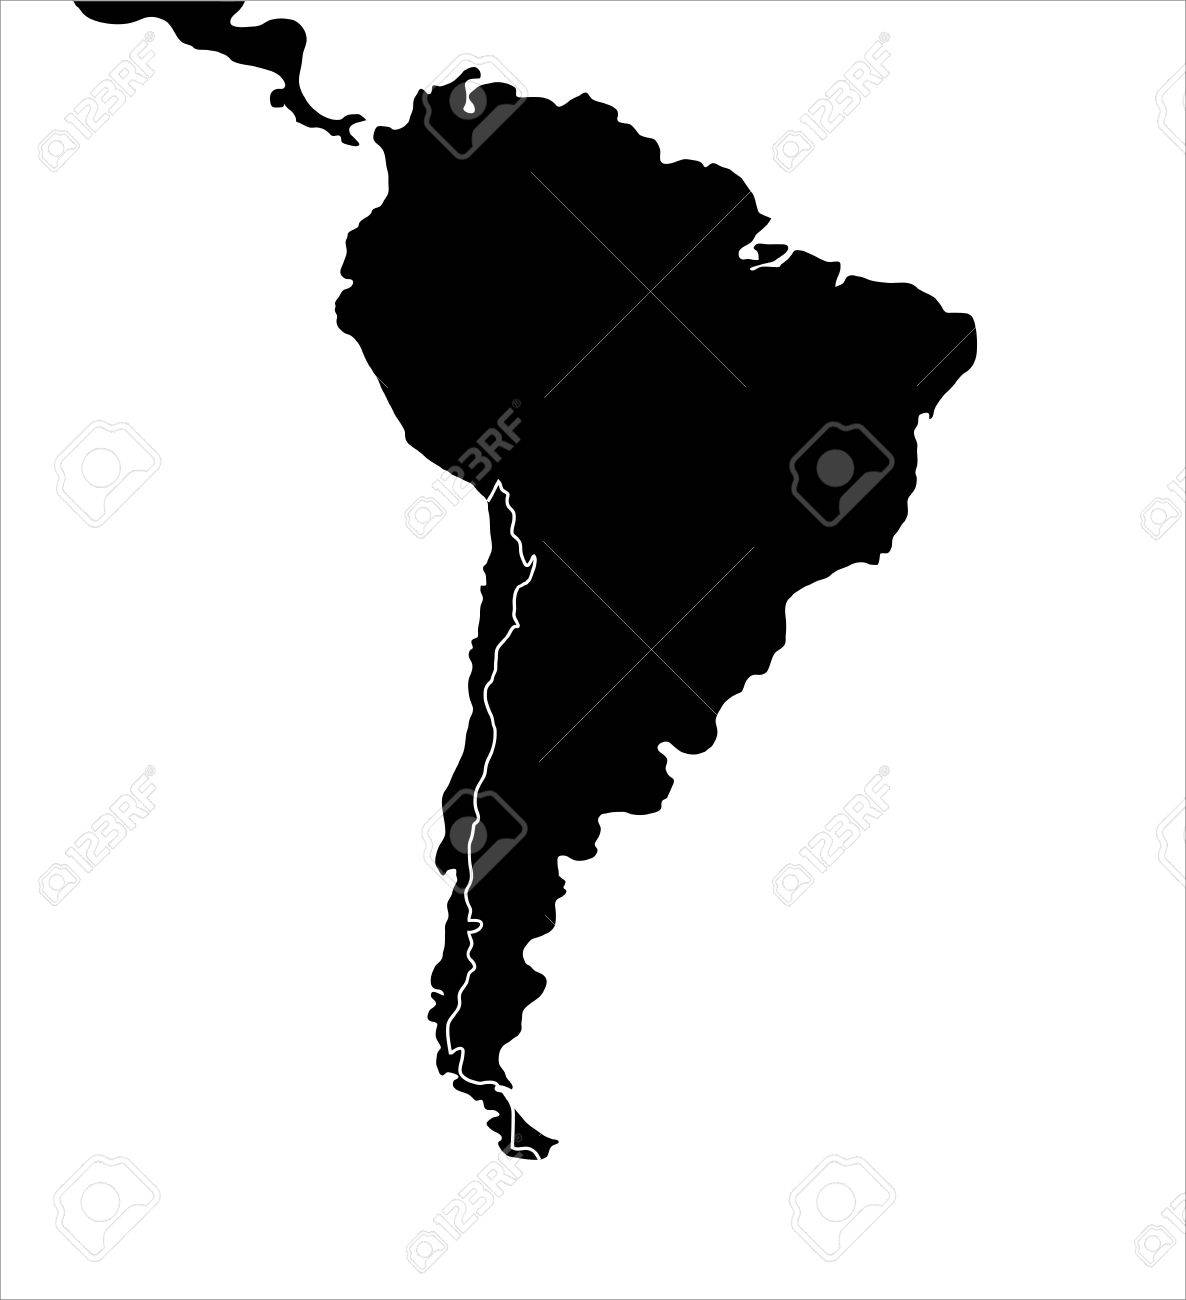 South America Map Illustration Stock Photo Picture And Royalty - South america map outline